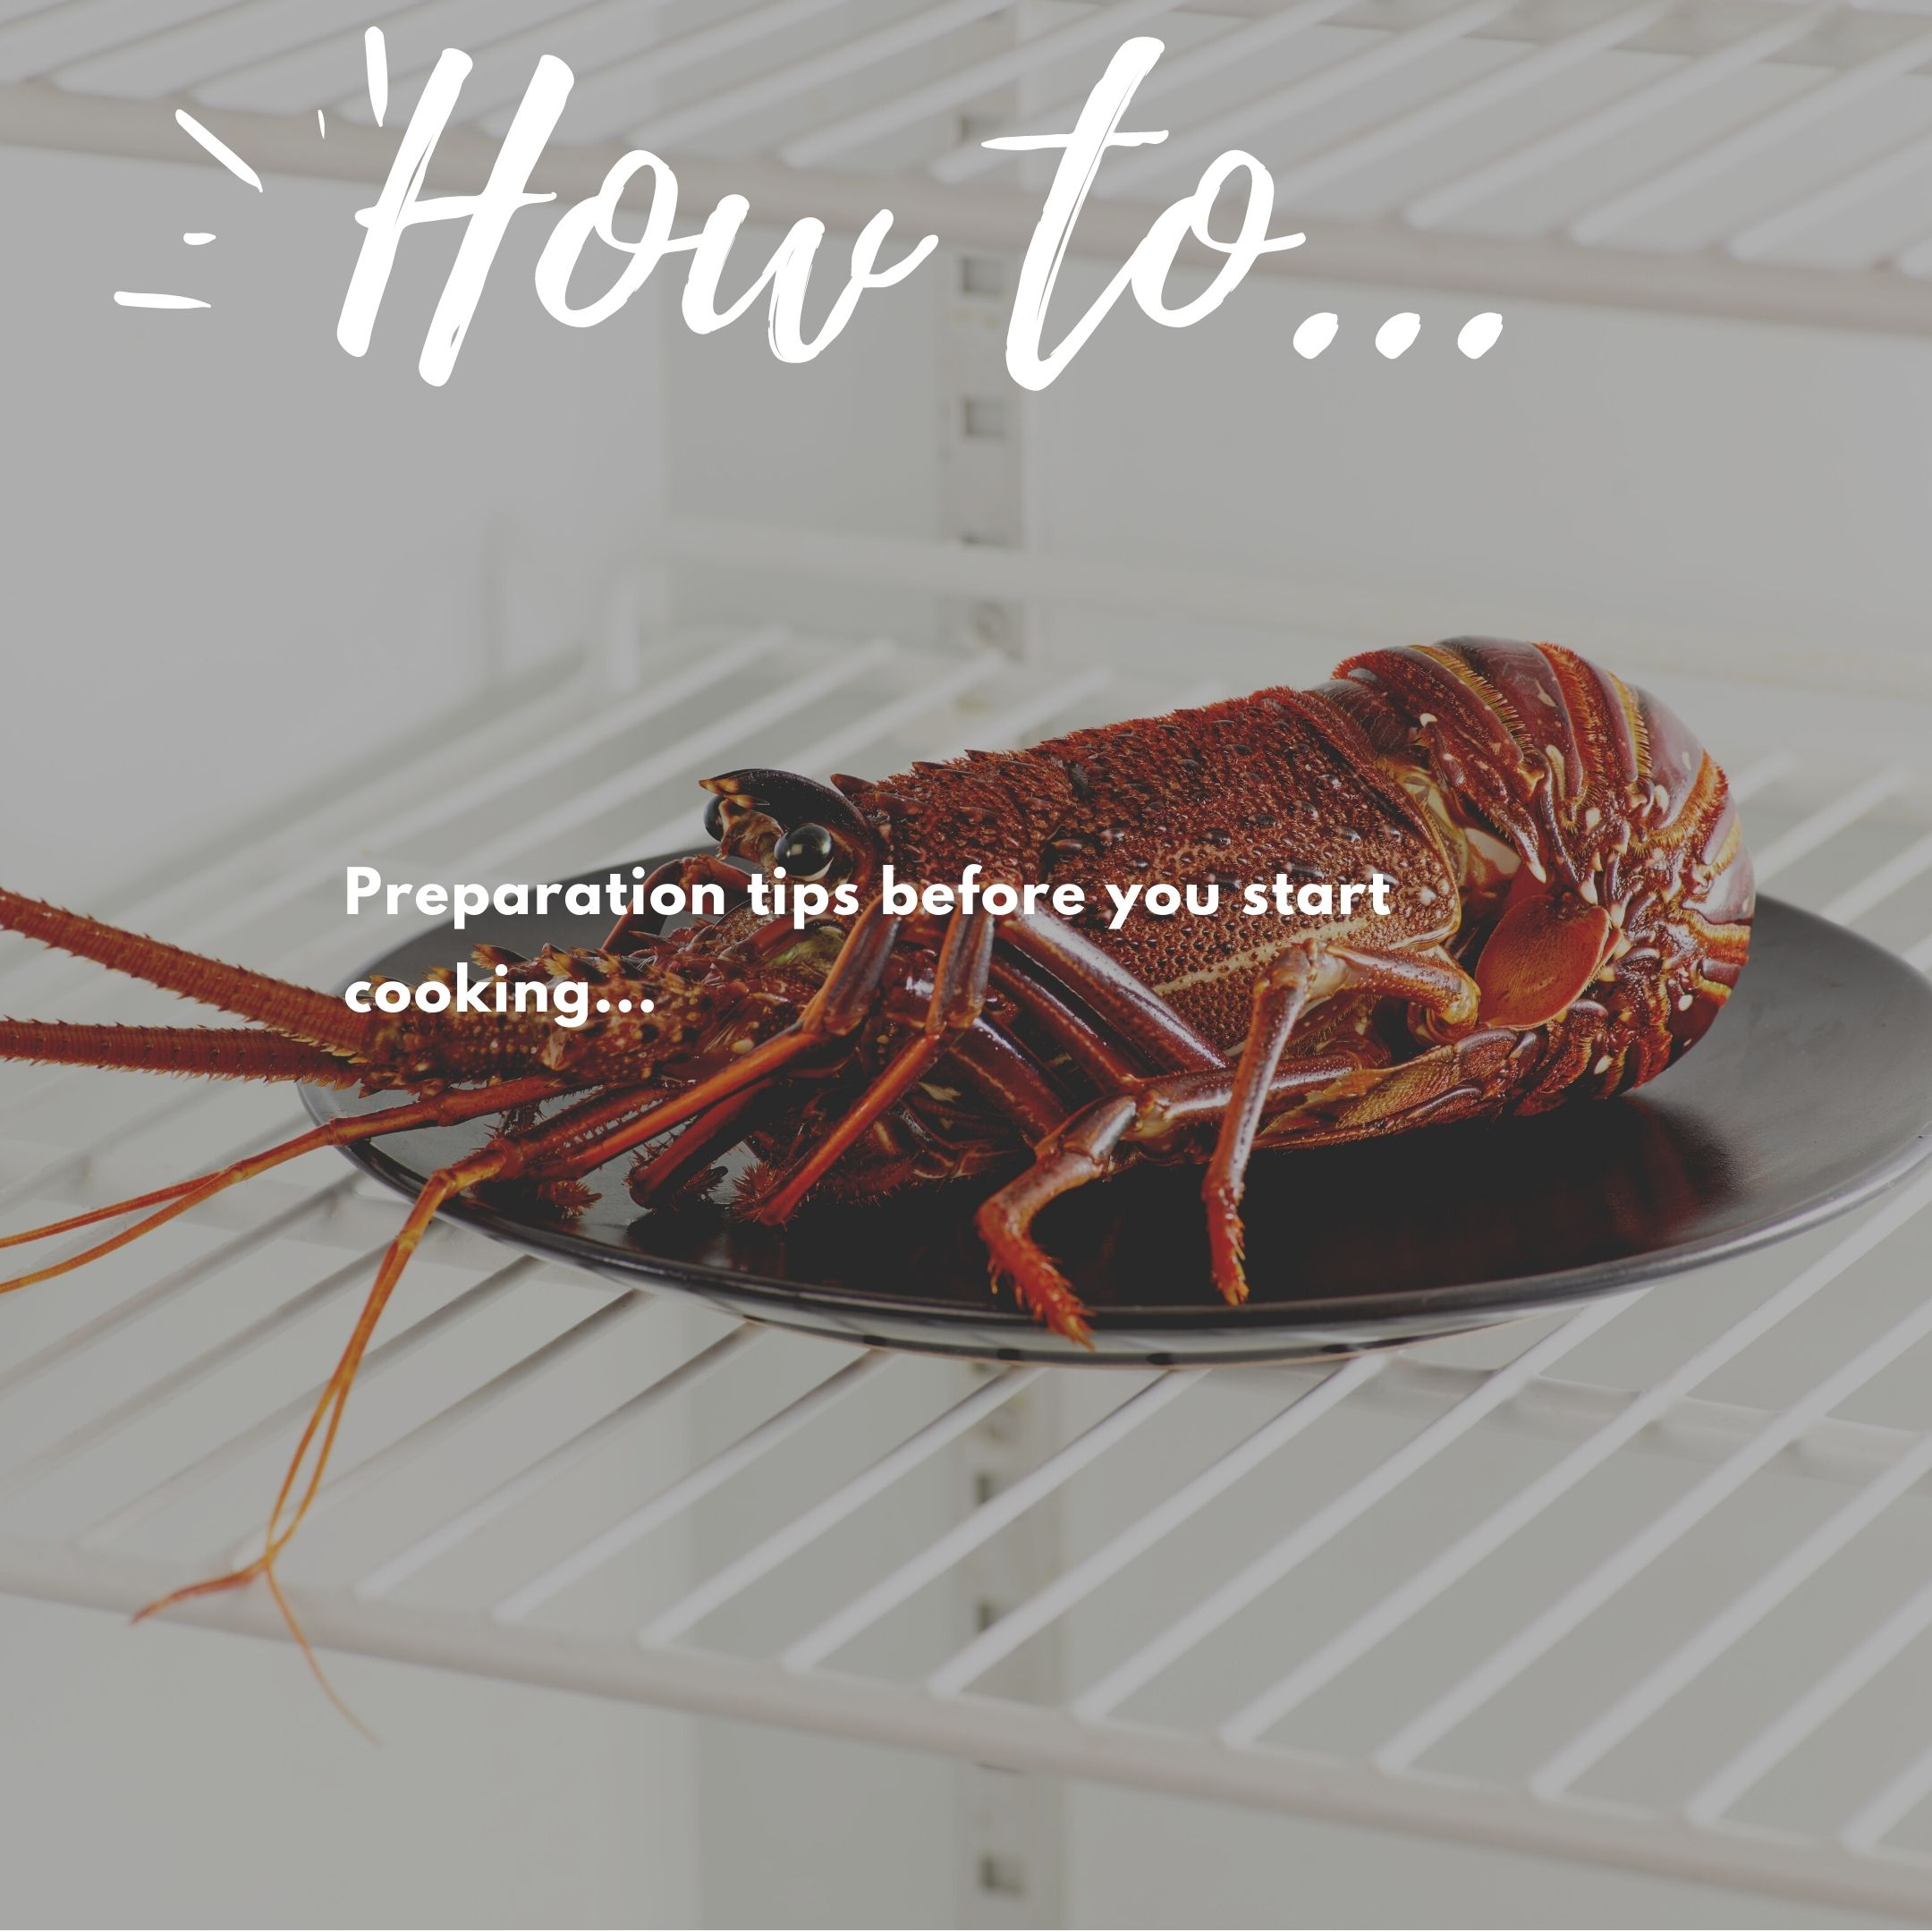 Lobster how to guide